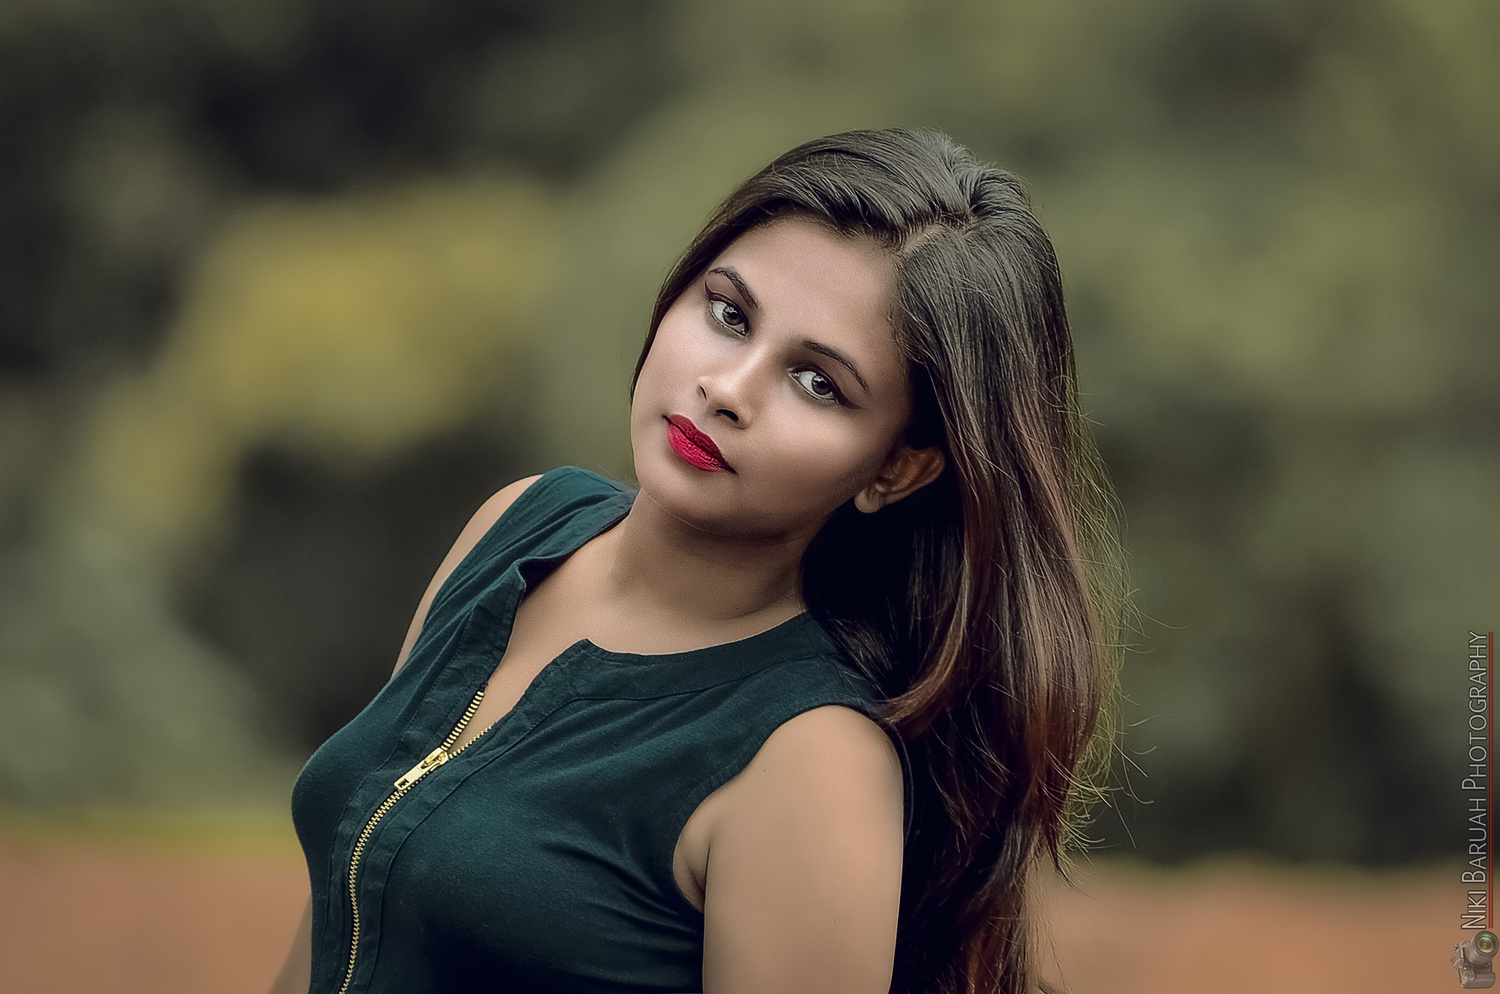 A Headshot with the Nikon D7000 by niki baruah